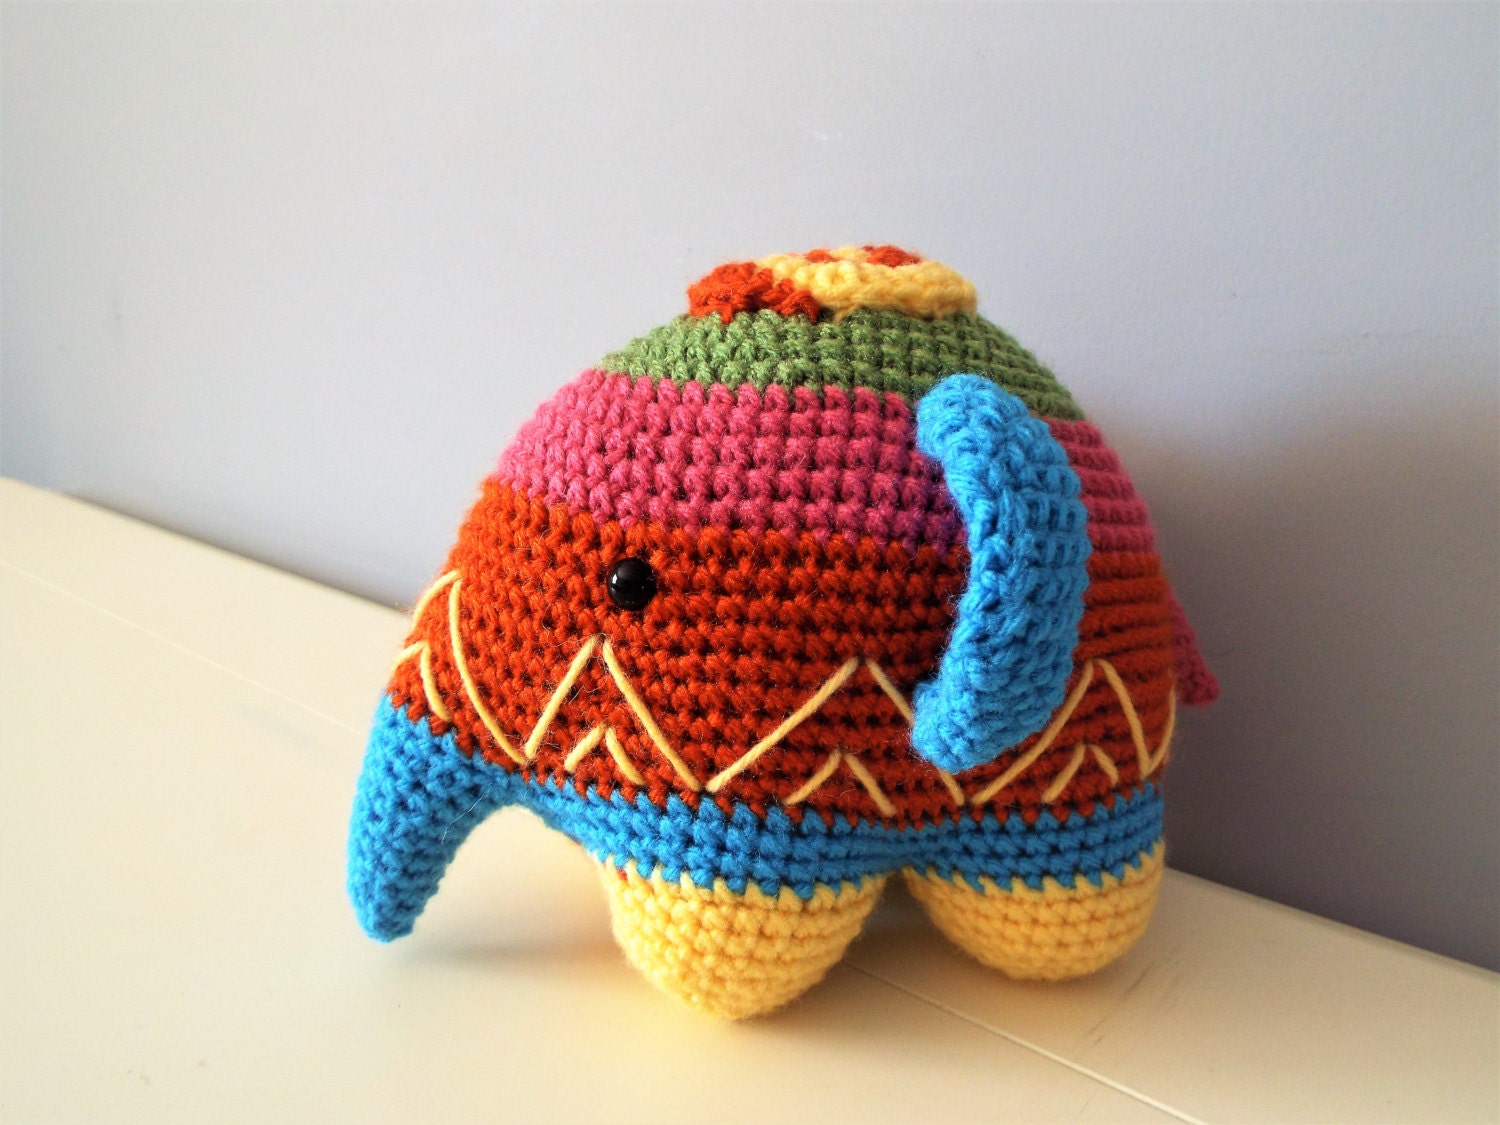 Crochet Colorful Elephant Amigurumi Dolls Gift Ideas Home Decor